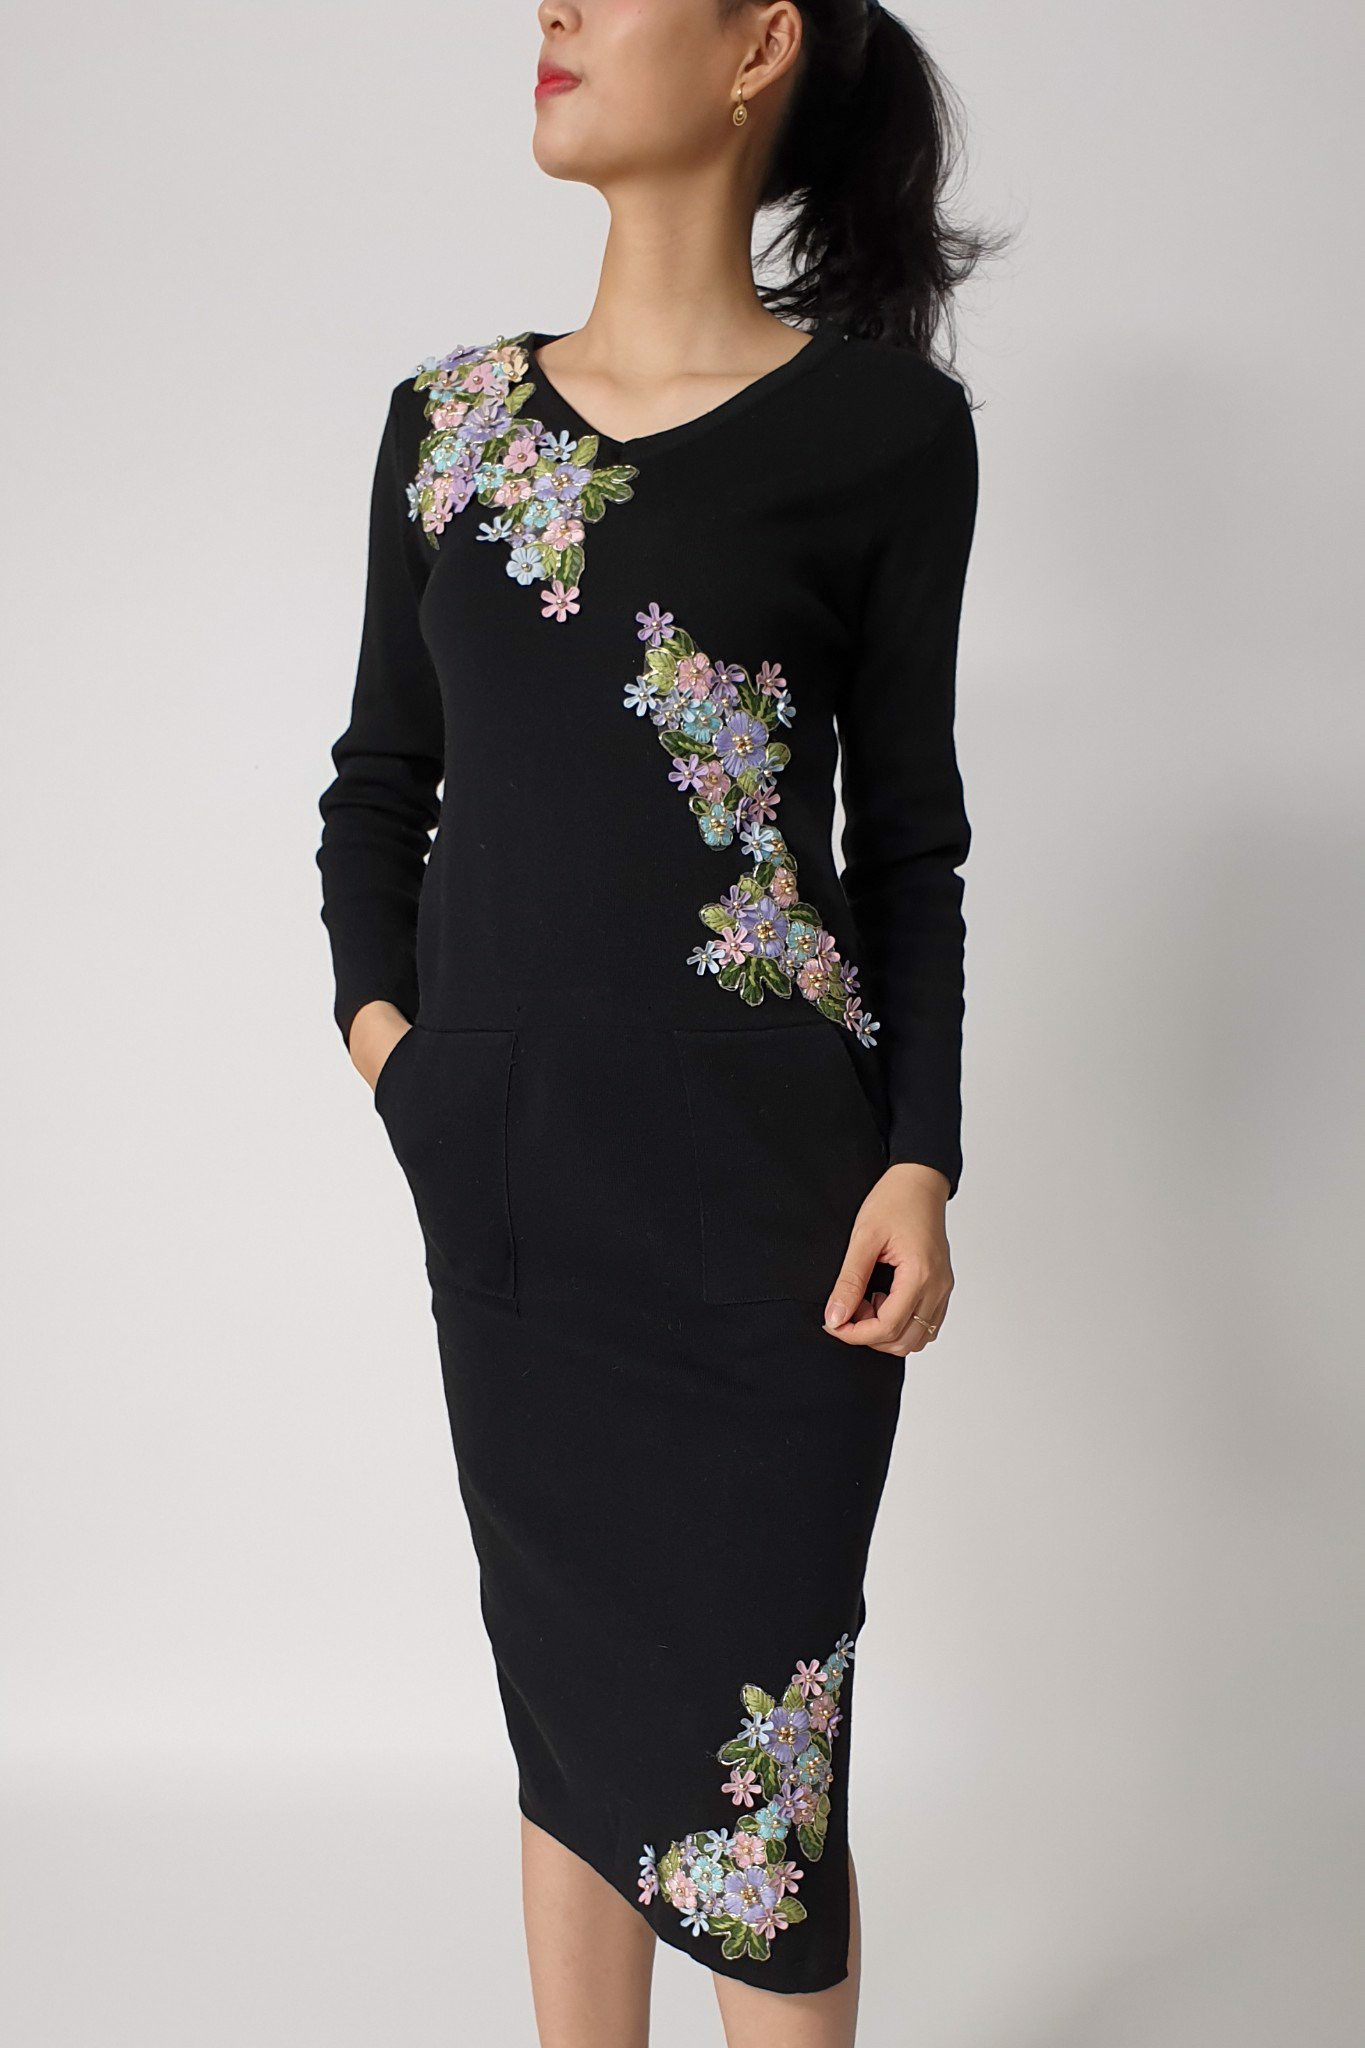 3D mini flowers black asymmetrical dress